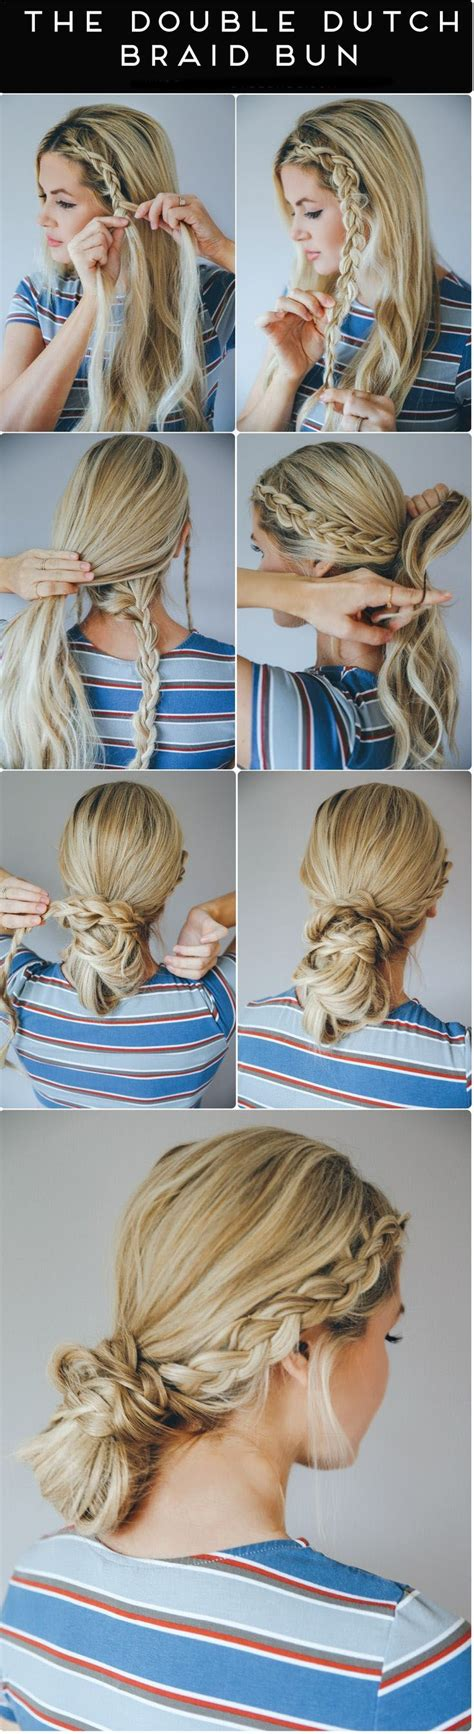 DIY: Quick & Easy 3 Hairstyles You Can Do In Less Than 10